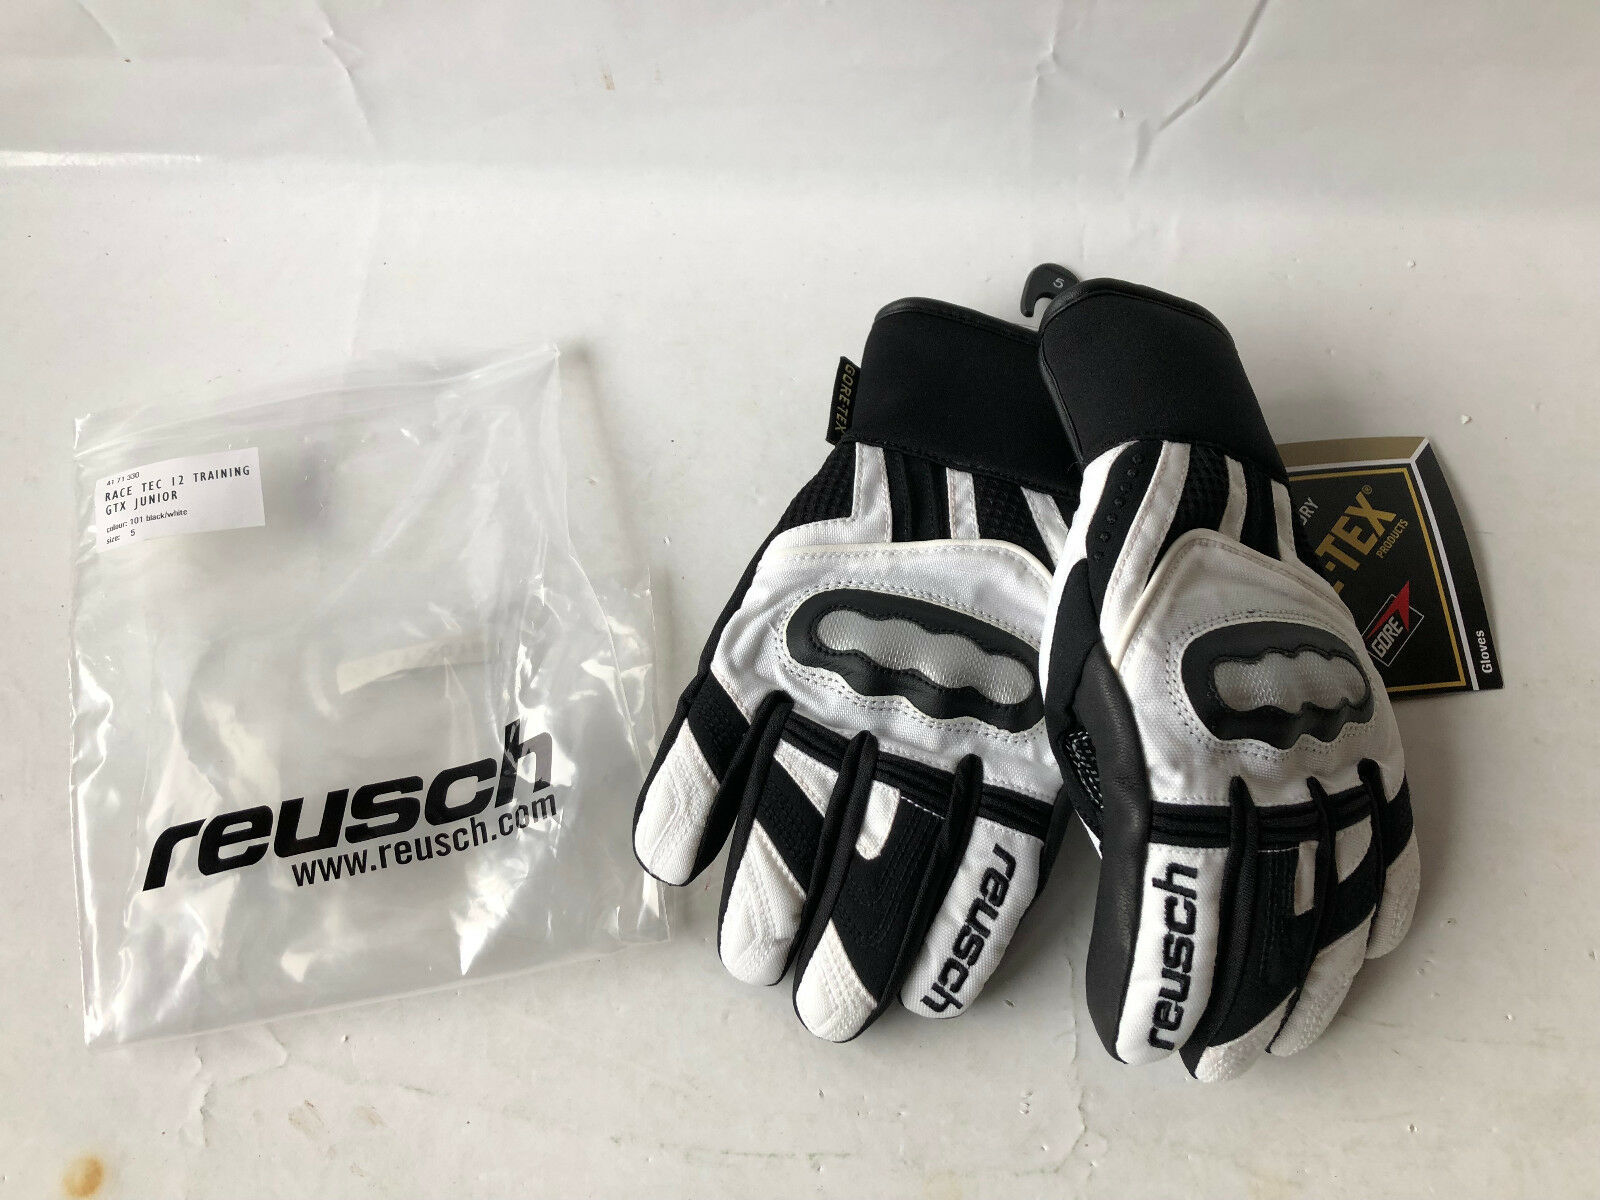 Reusch top Racing Skihandschuhe RACE TEC 12 TRAINING GTX JUNIOR Gr. 5